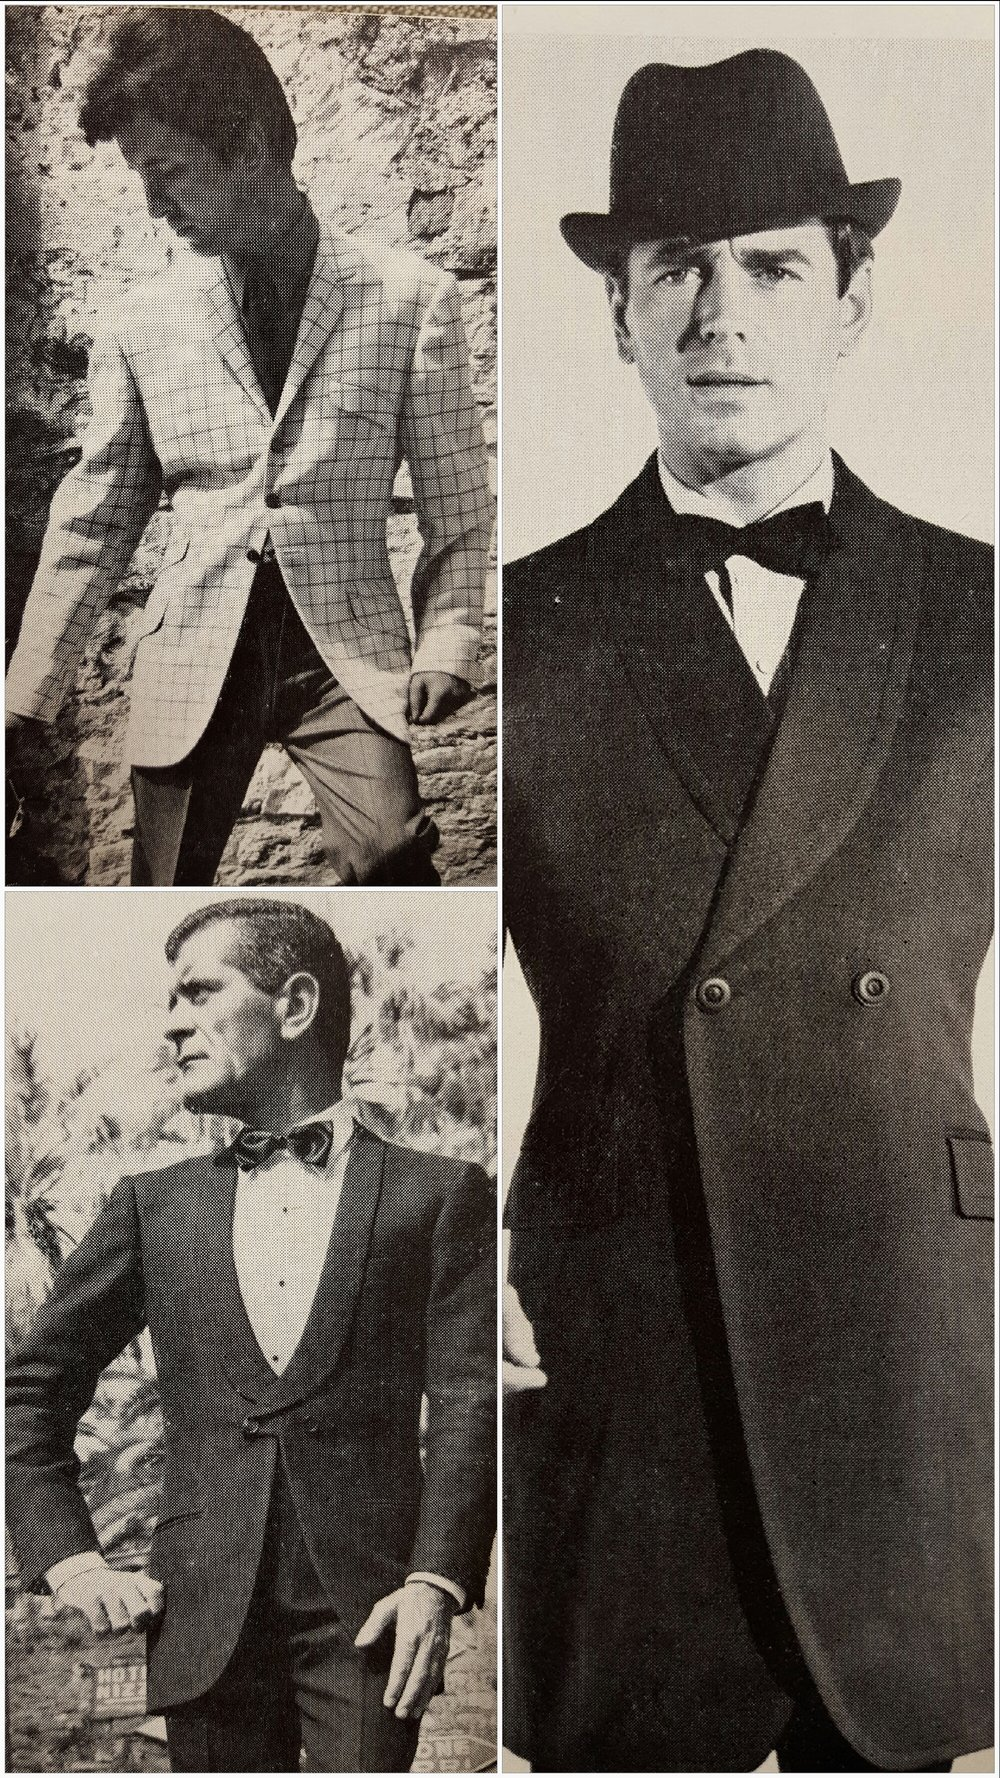 A couple of examples of the garments being featured in this issue. A mixture of contemporary and experimental examples.